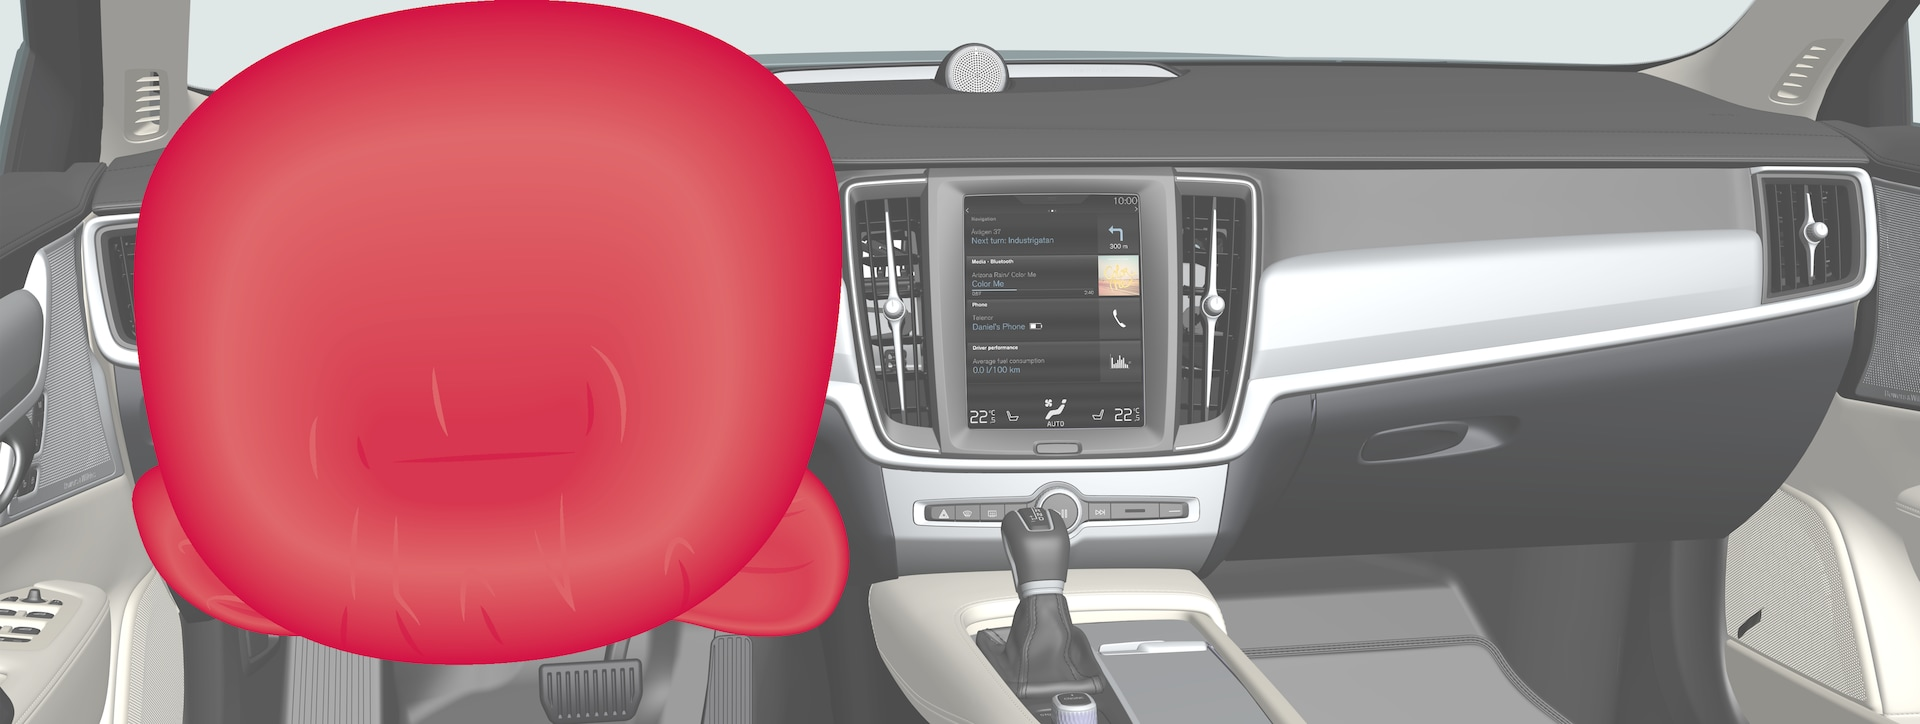 P5-1746-S90/V90–Safety–Driver airbags